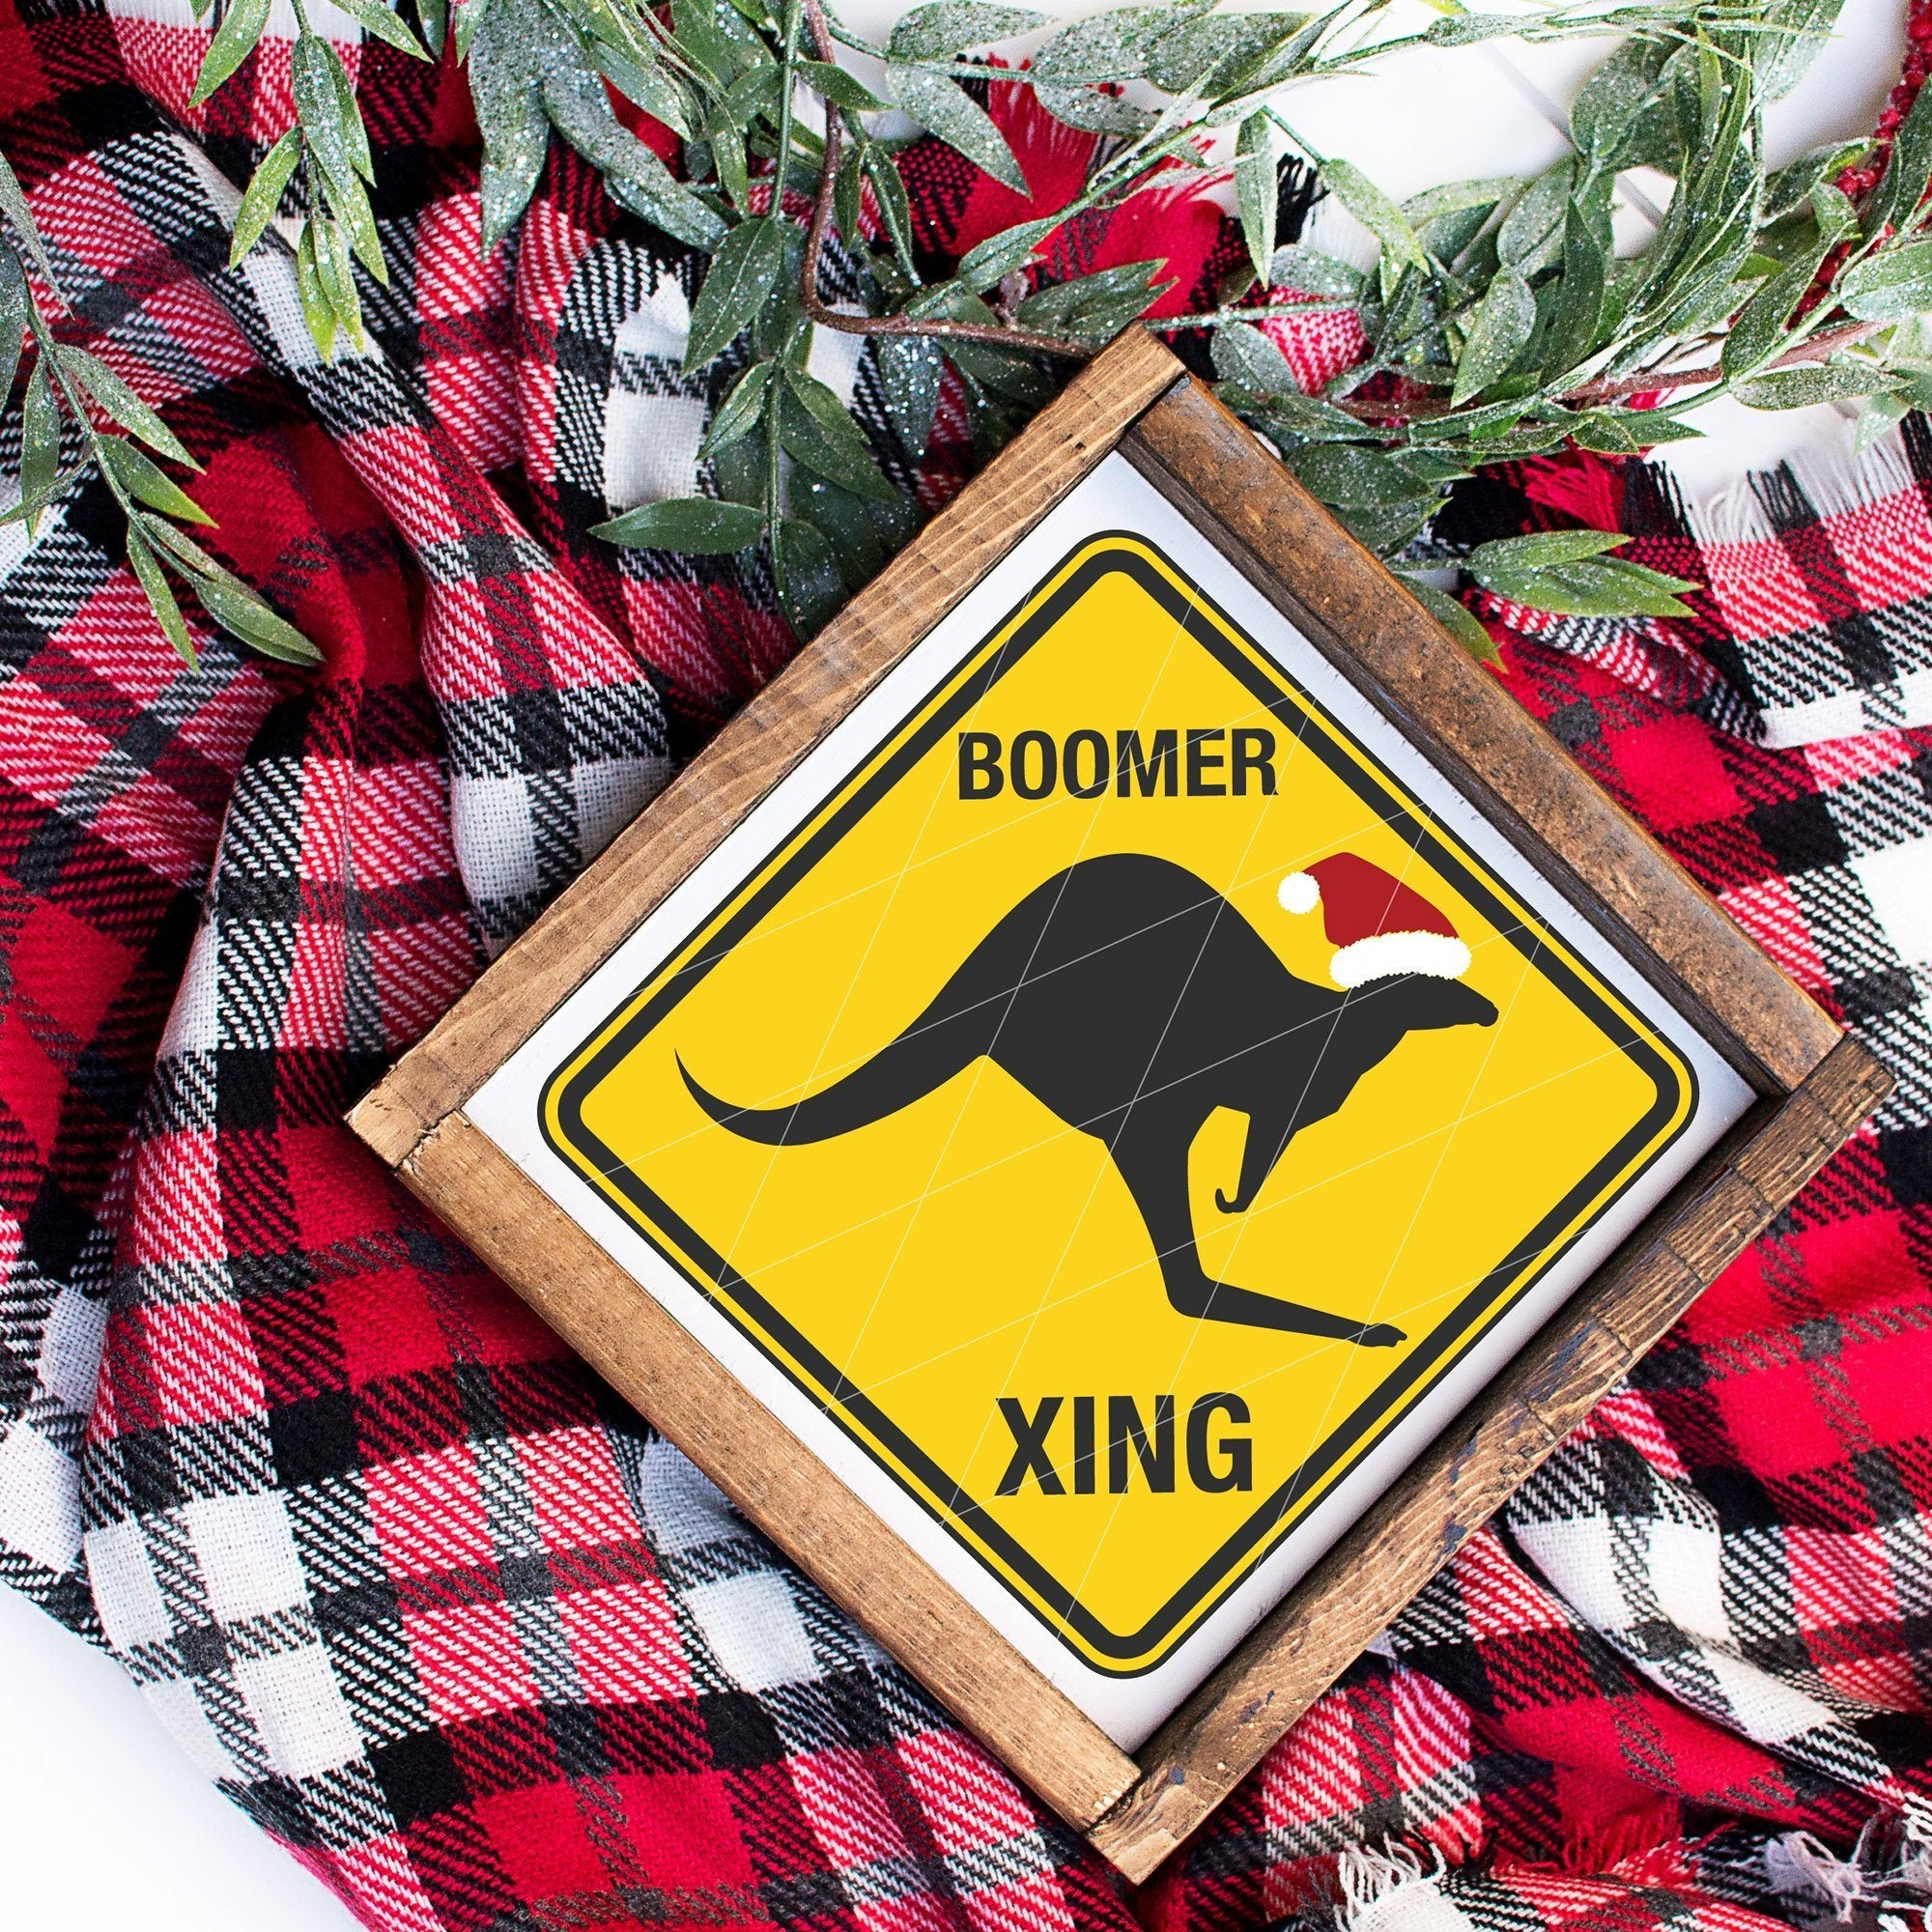 Boomer Crossing Caution Sign SVG For Australian Christmas - Commercial Use SVG Files